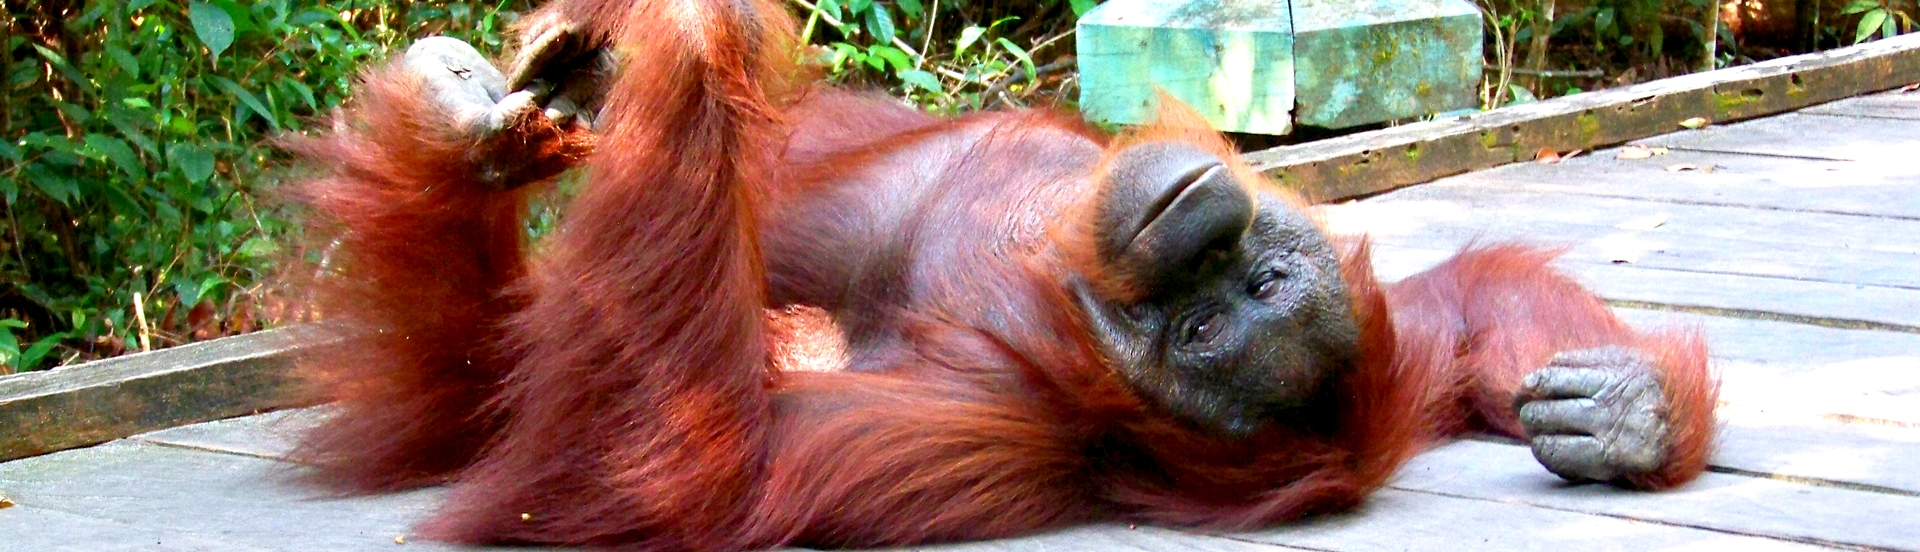 Orang outang - Borneo - Indonesie